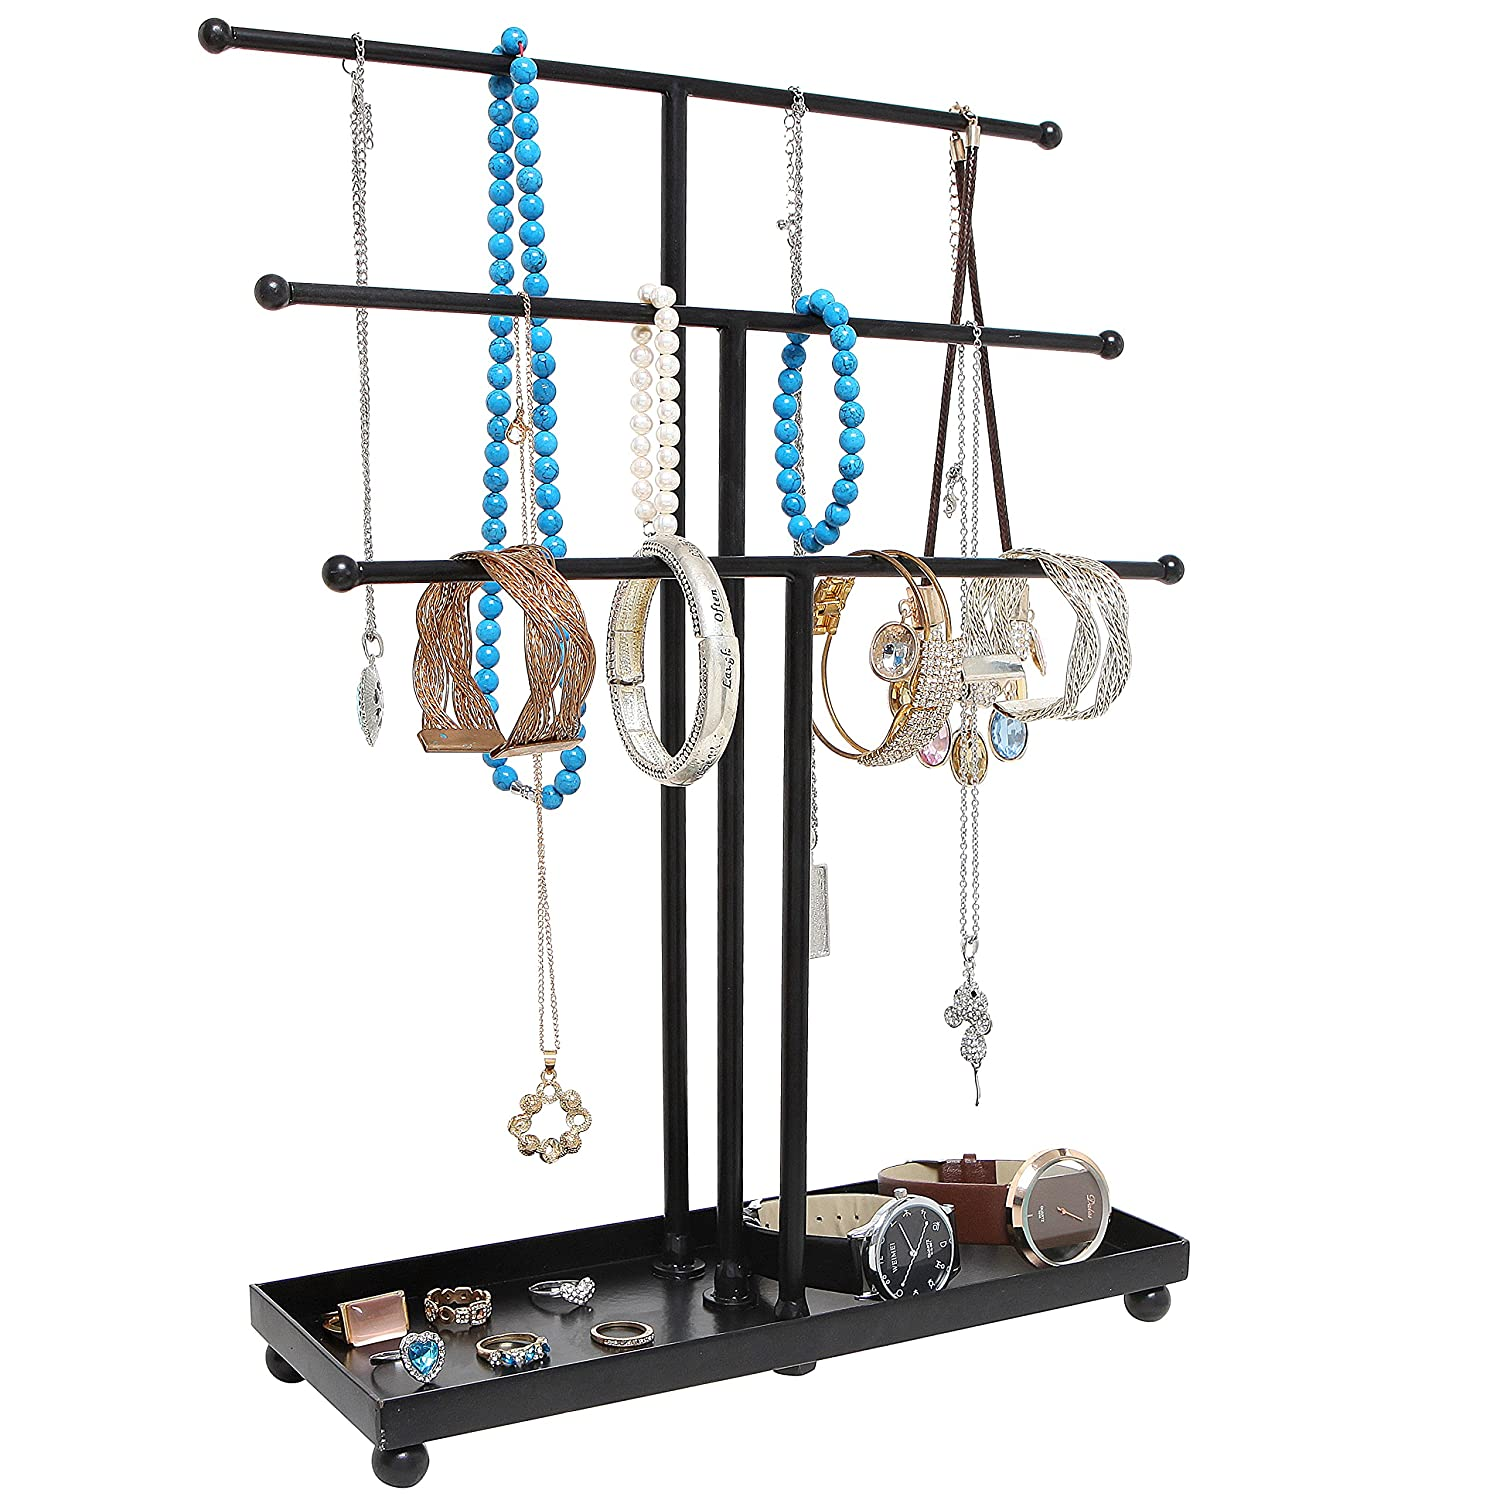 Modern Black Metal 3 Tier Tabletop Bracelet & Necklace Jewelry Organizer Display Tree Rack W/ Ring Tray by My Gift